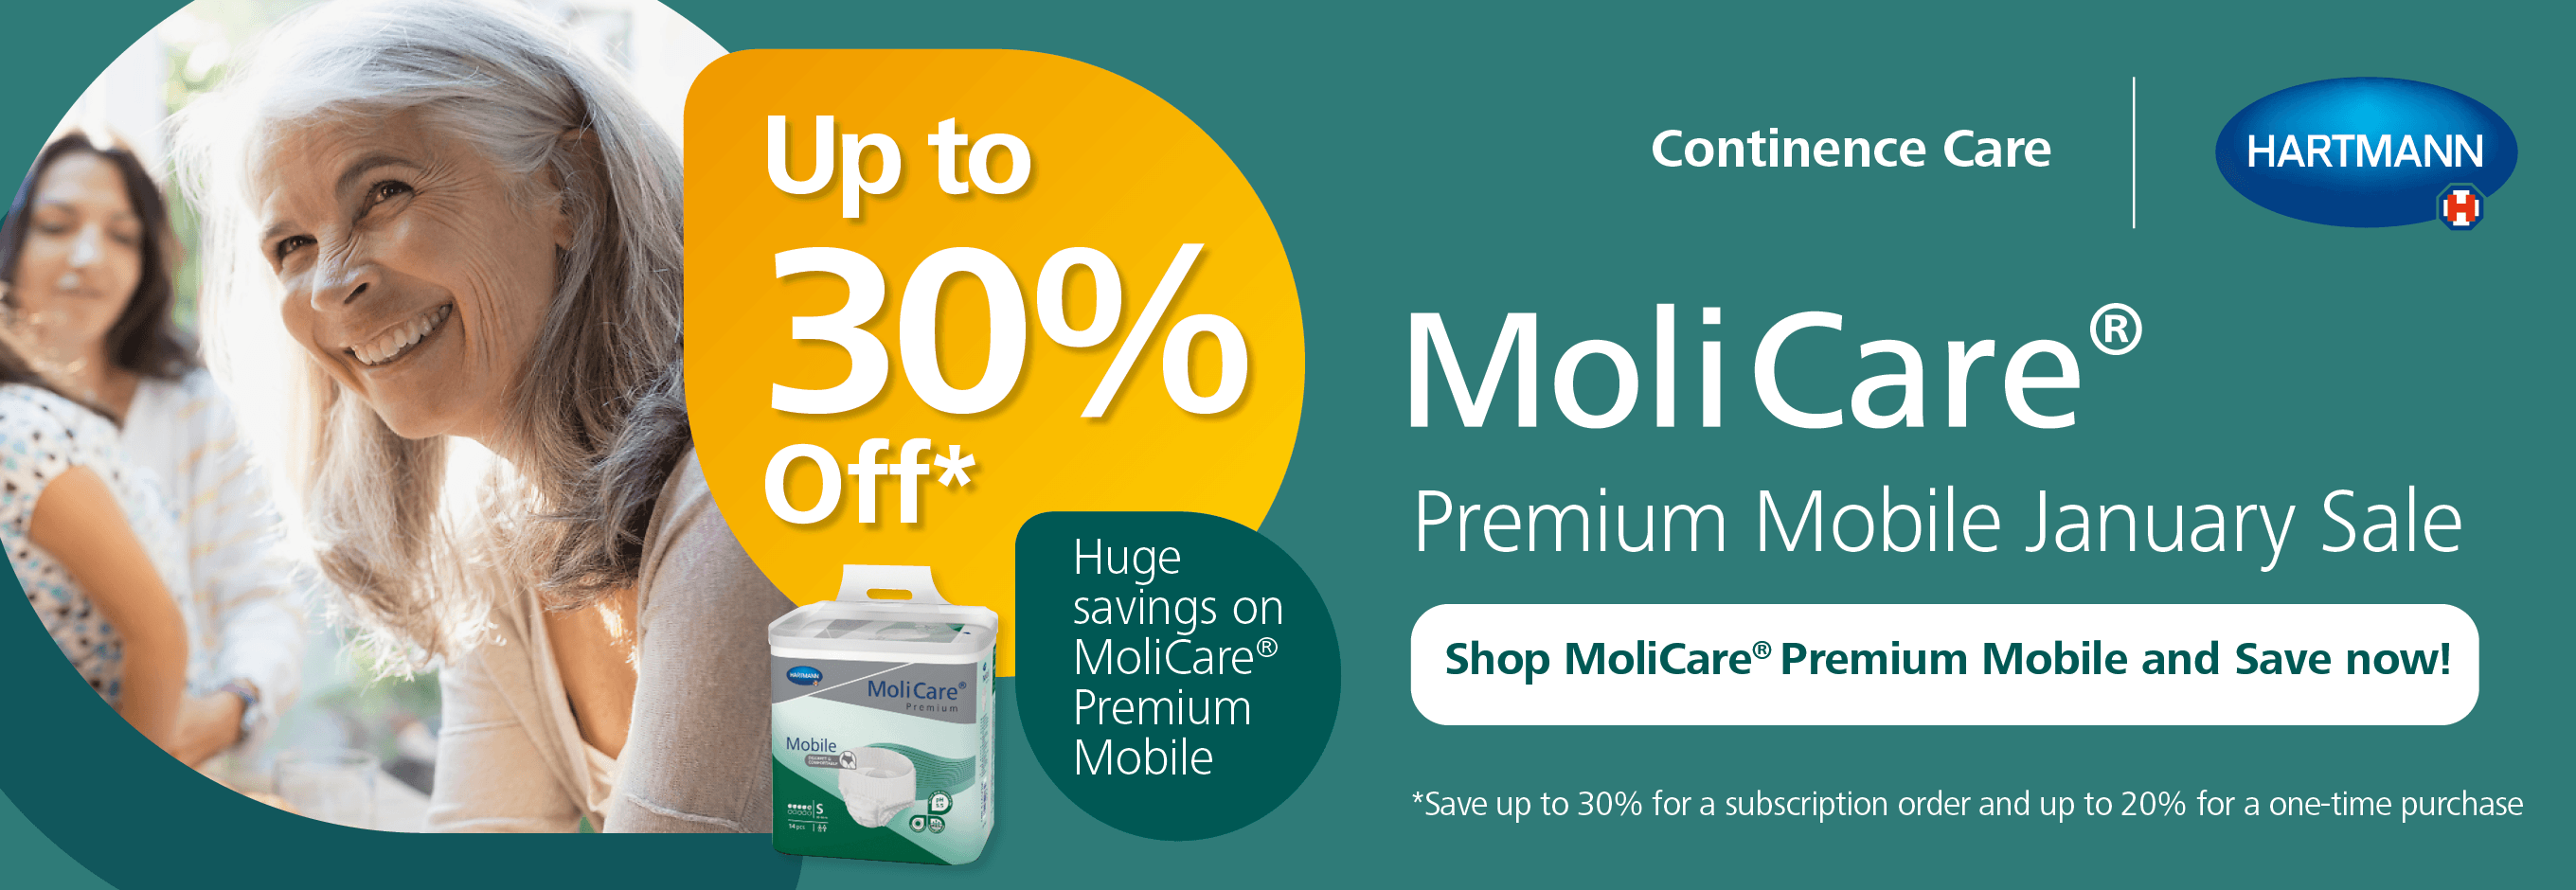 Up to 30% MoliCare Premium Mobile